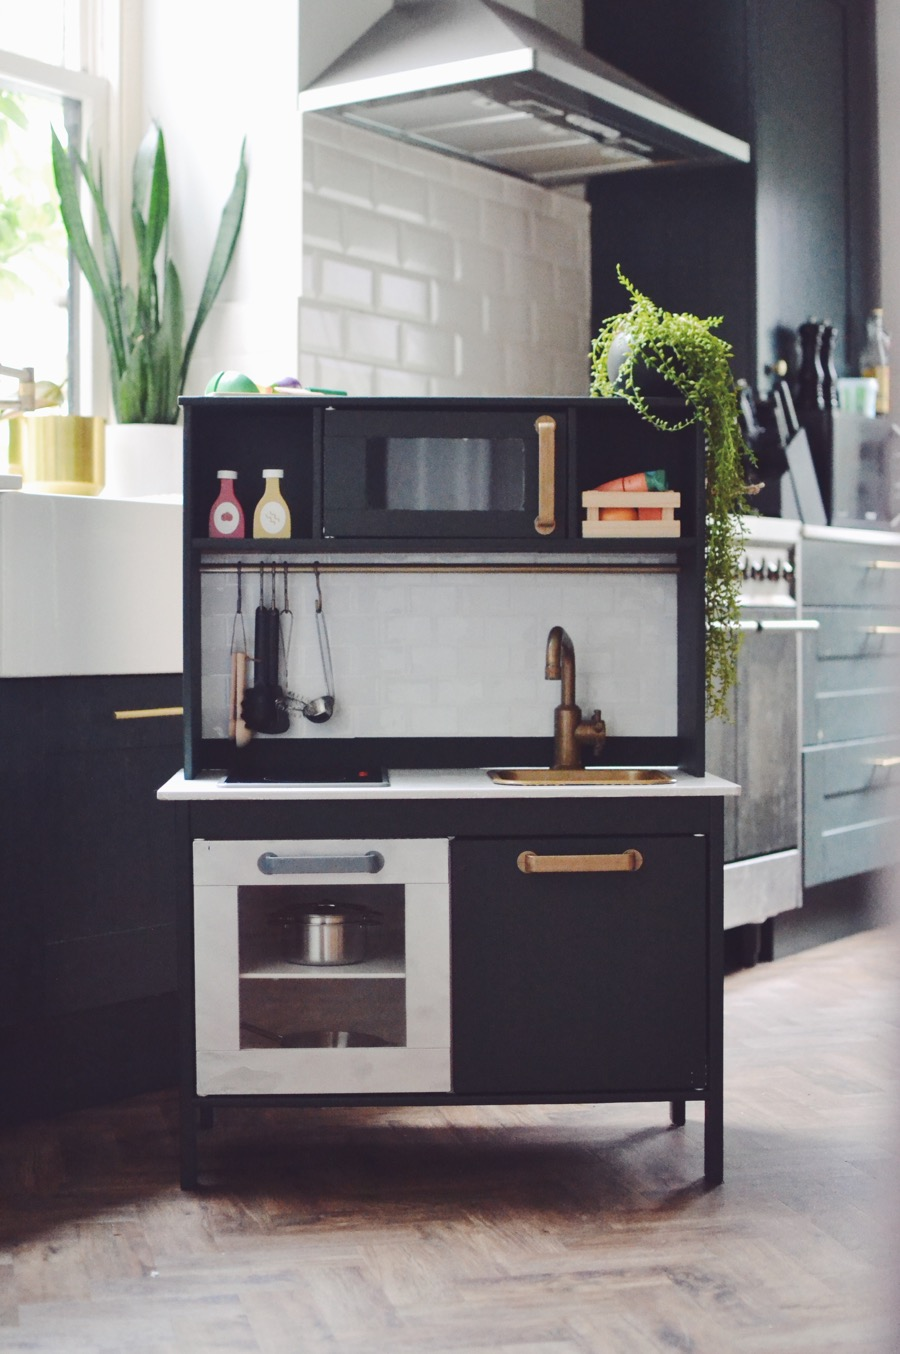 DIY Ikea play kitchen Duktig hack